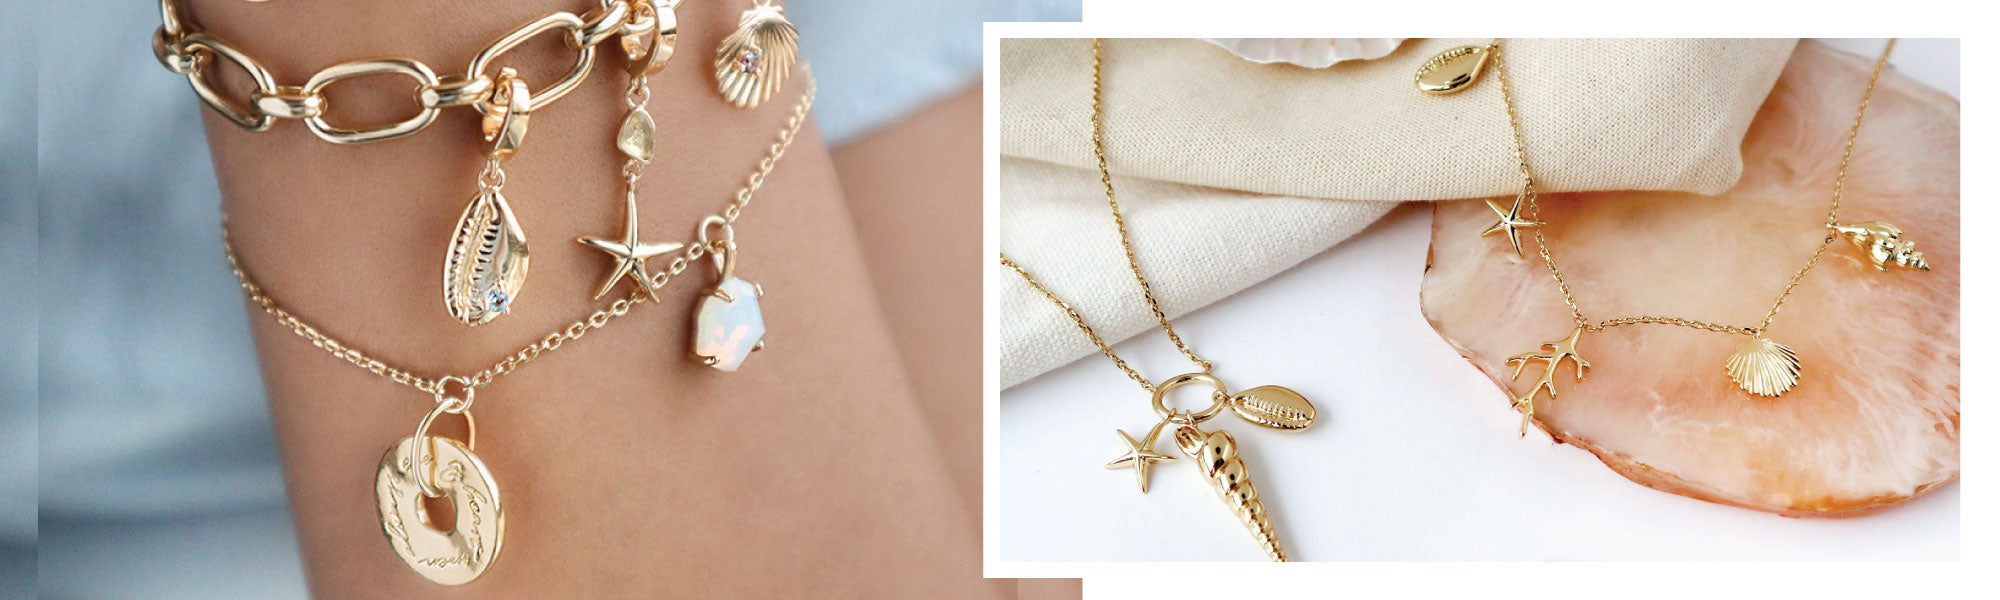 Summer Fashion: Seashell Jewelry